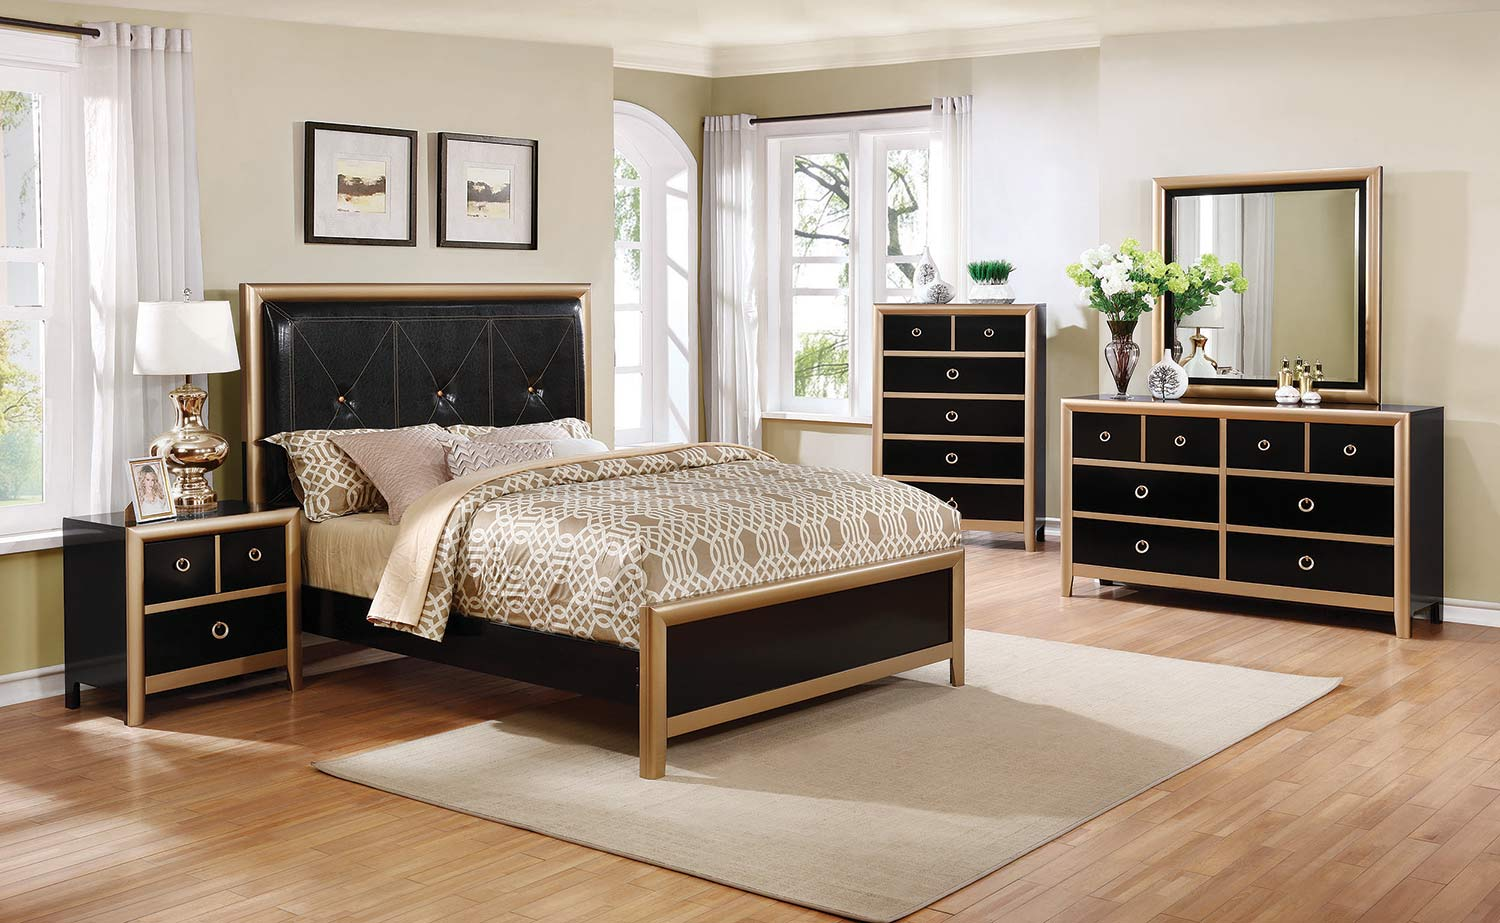 Coaster Zovatto Bedroom Collection - Black/Gold - Black Leatherette